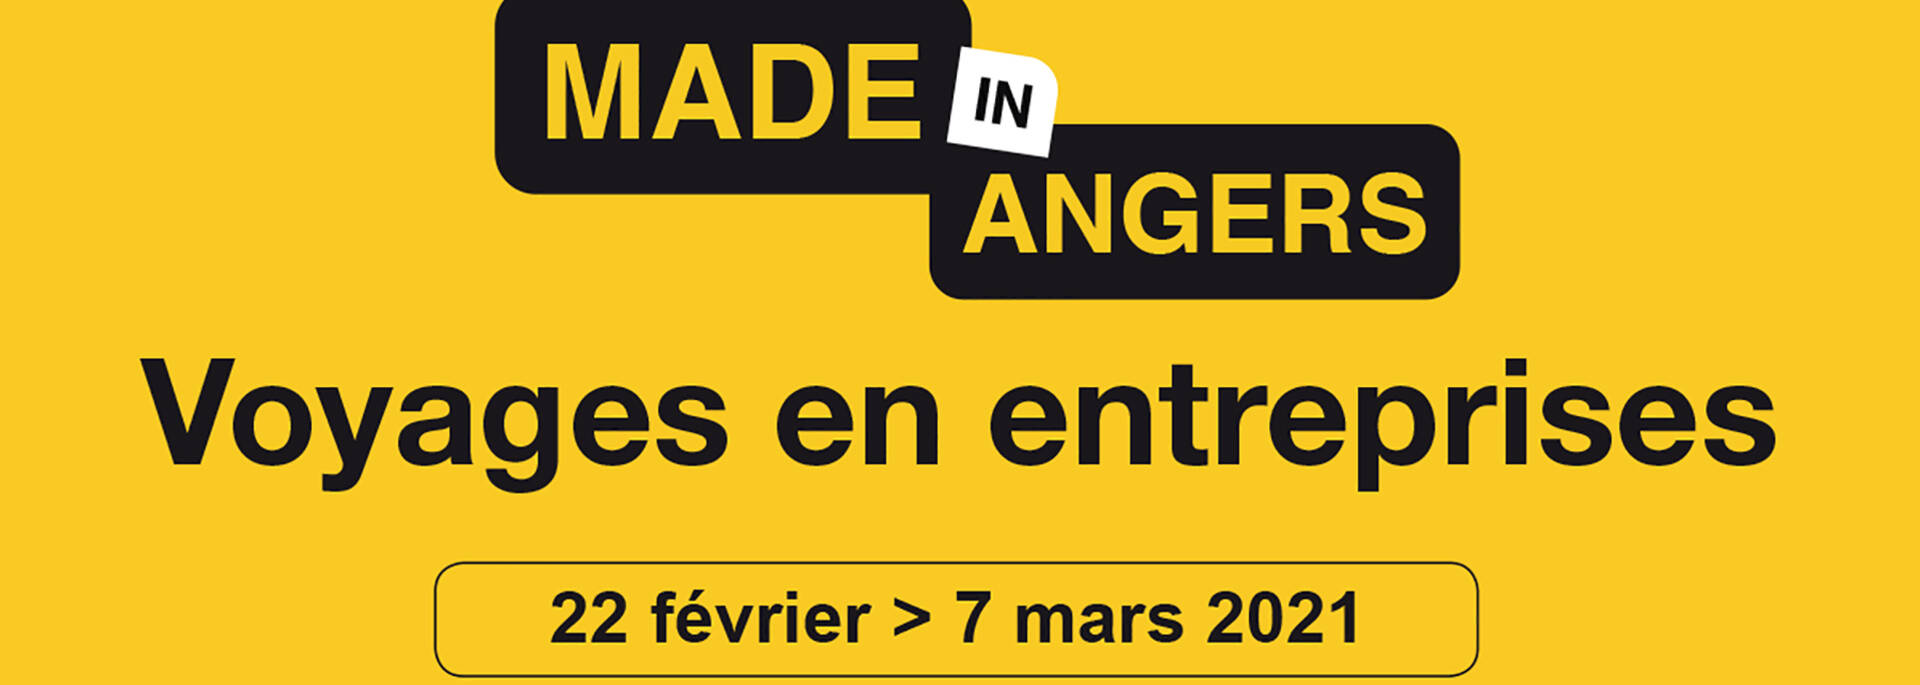 Made in Angers 2021